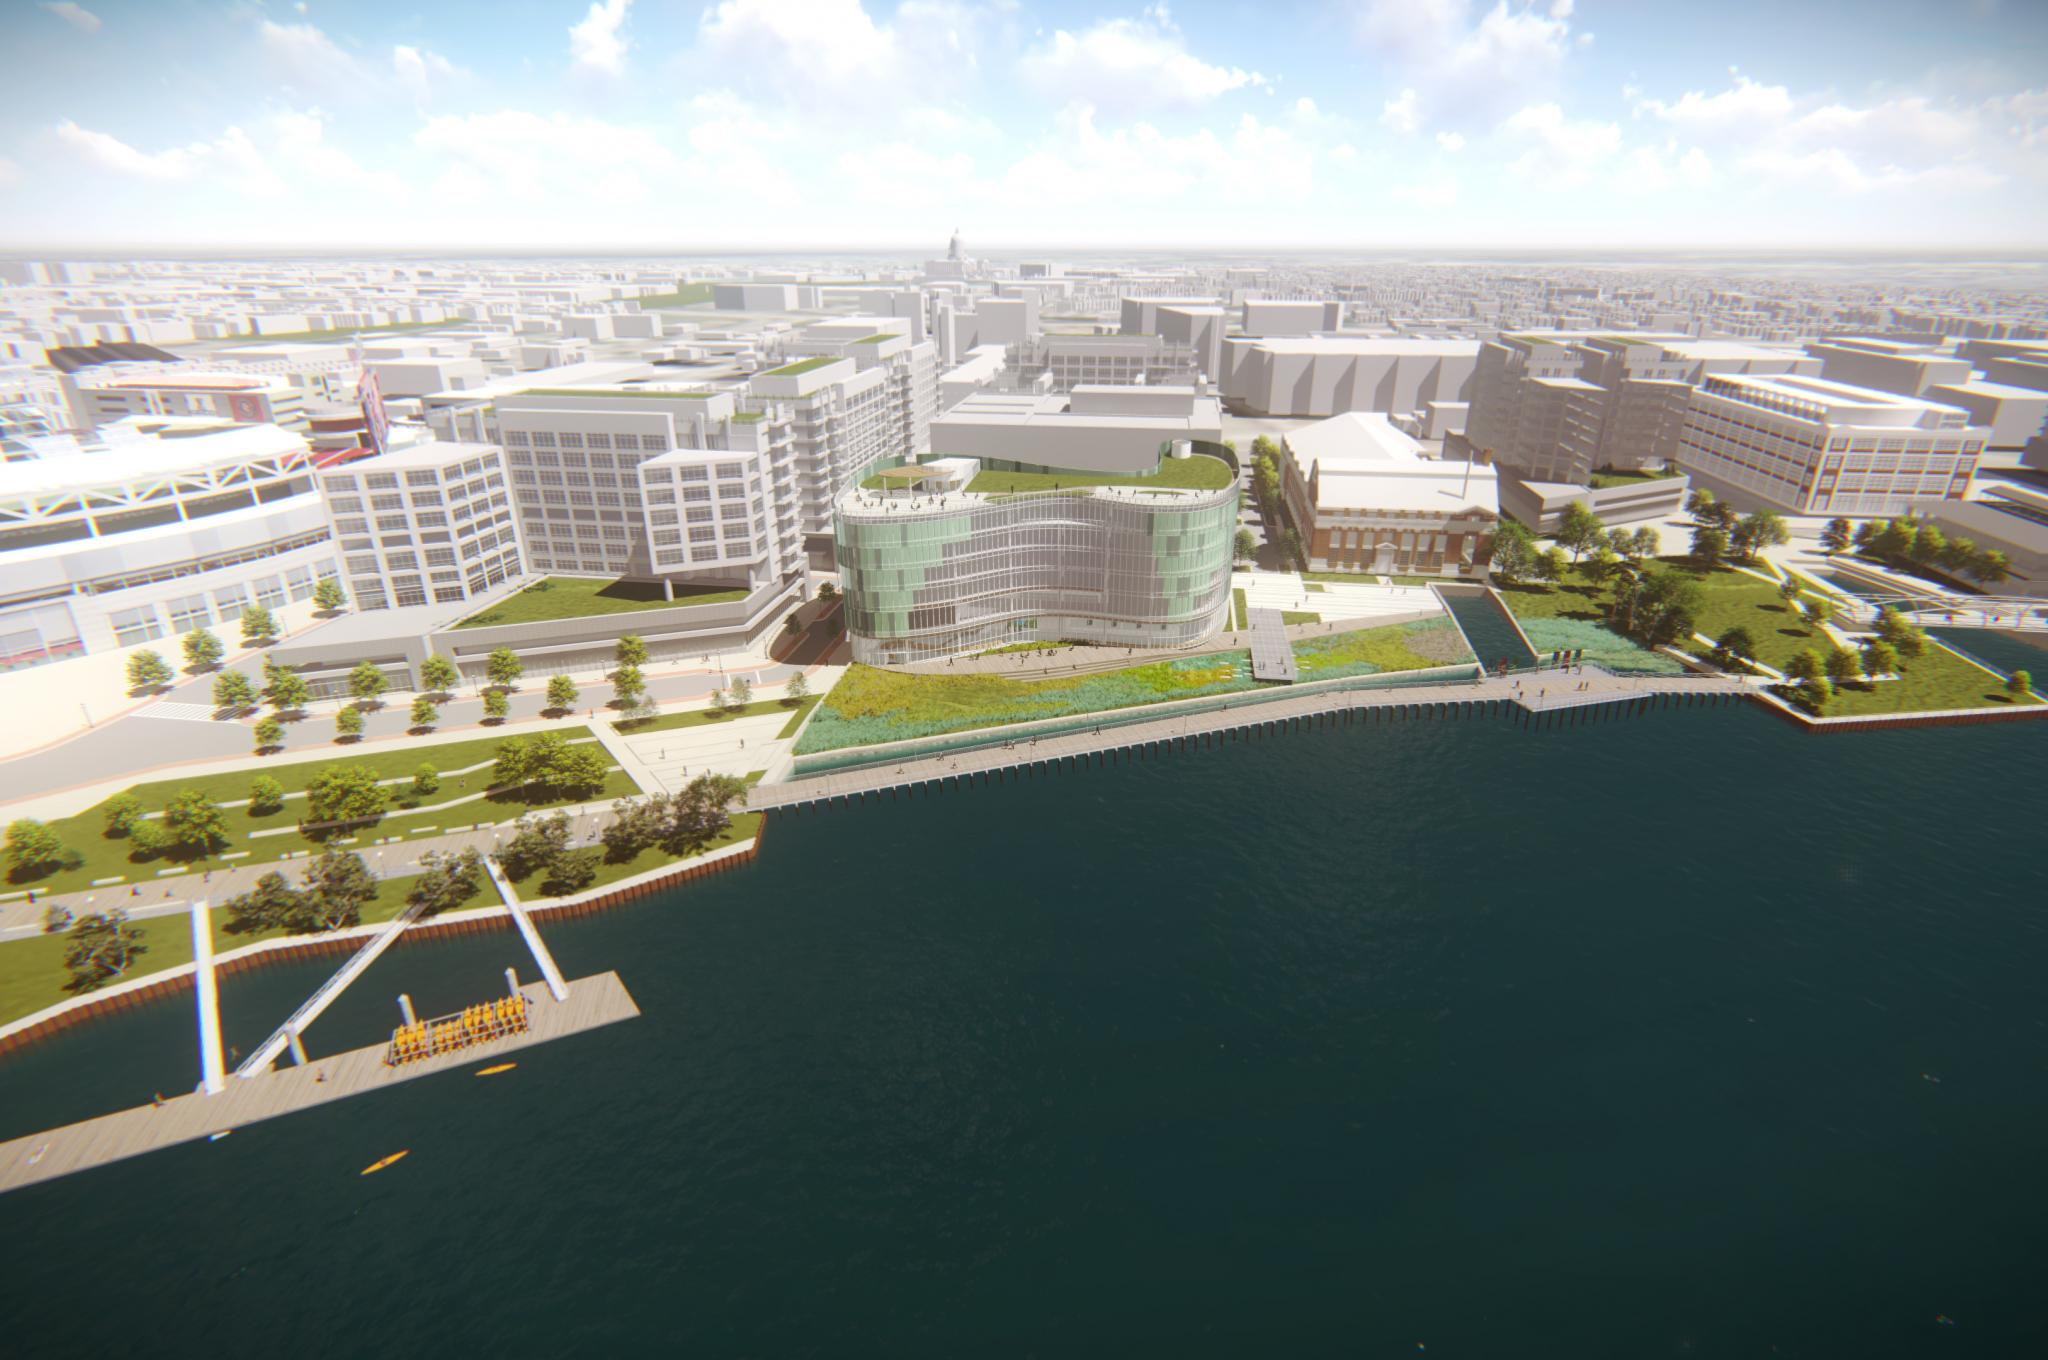 New DC Water Administrative Headquarters